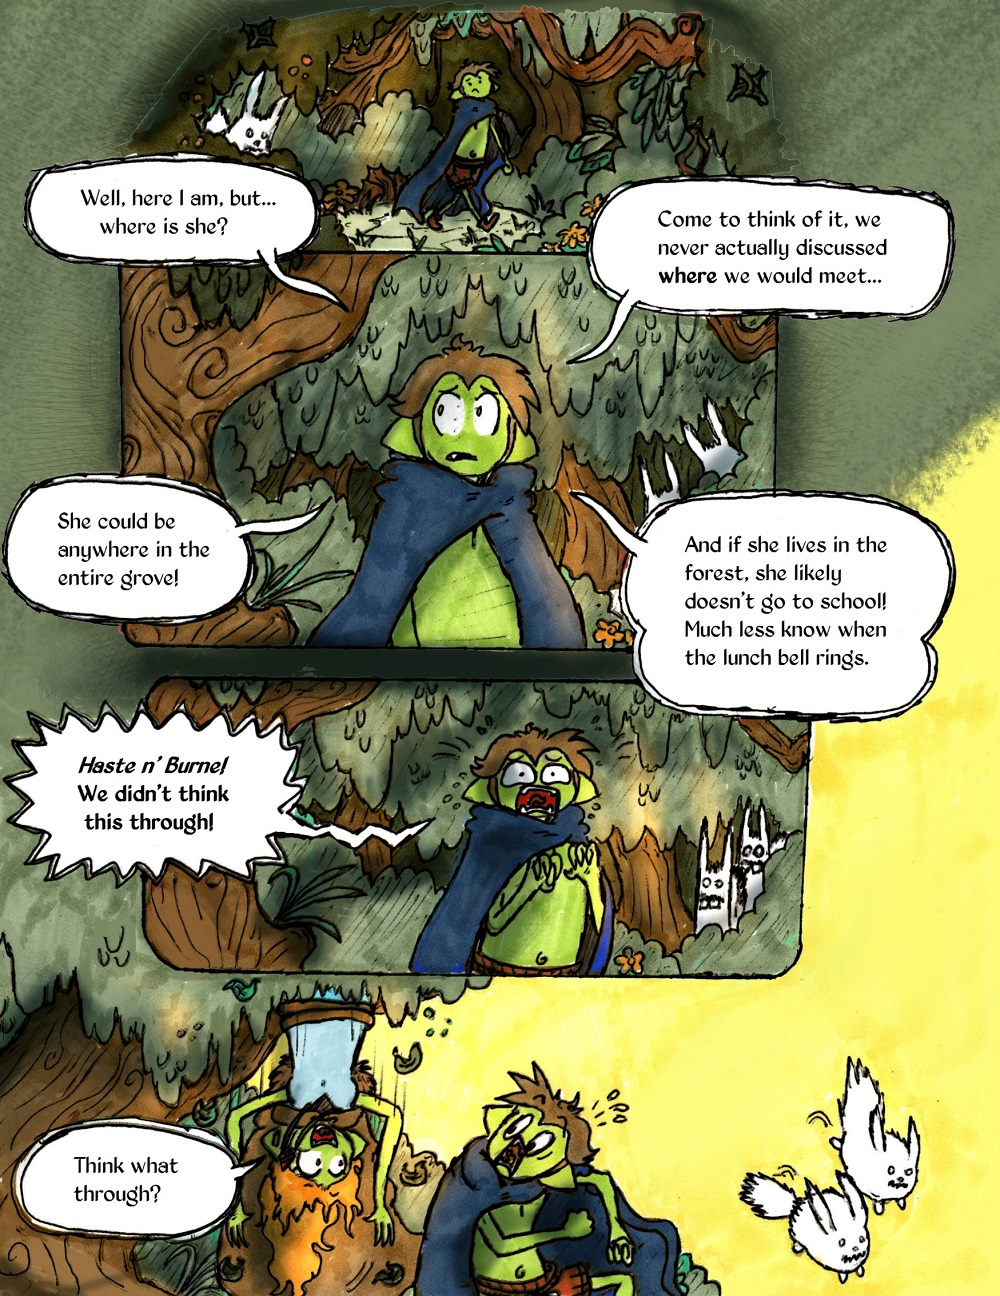 Page 45 - Haste n' Burne!